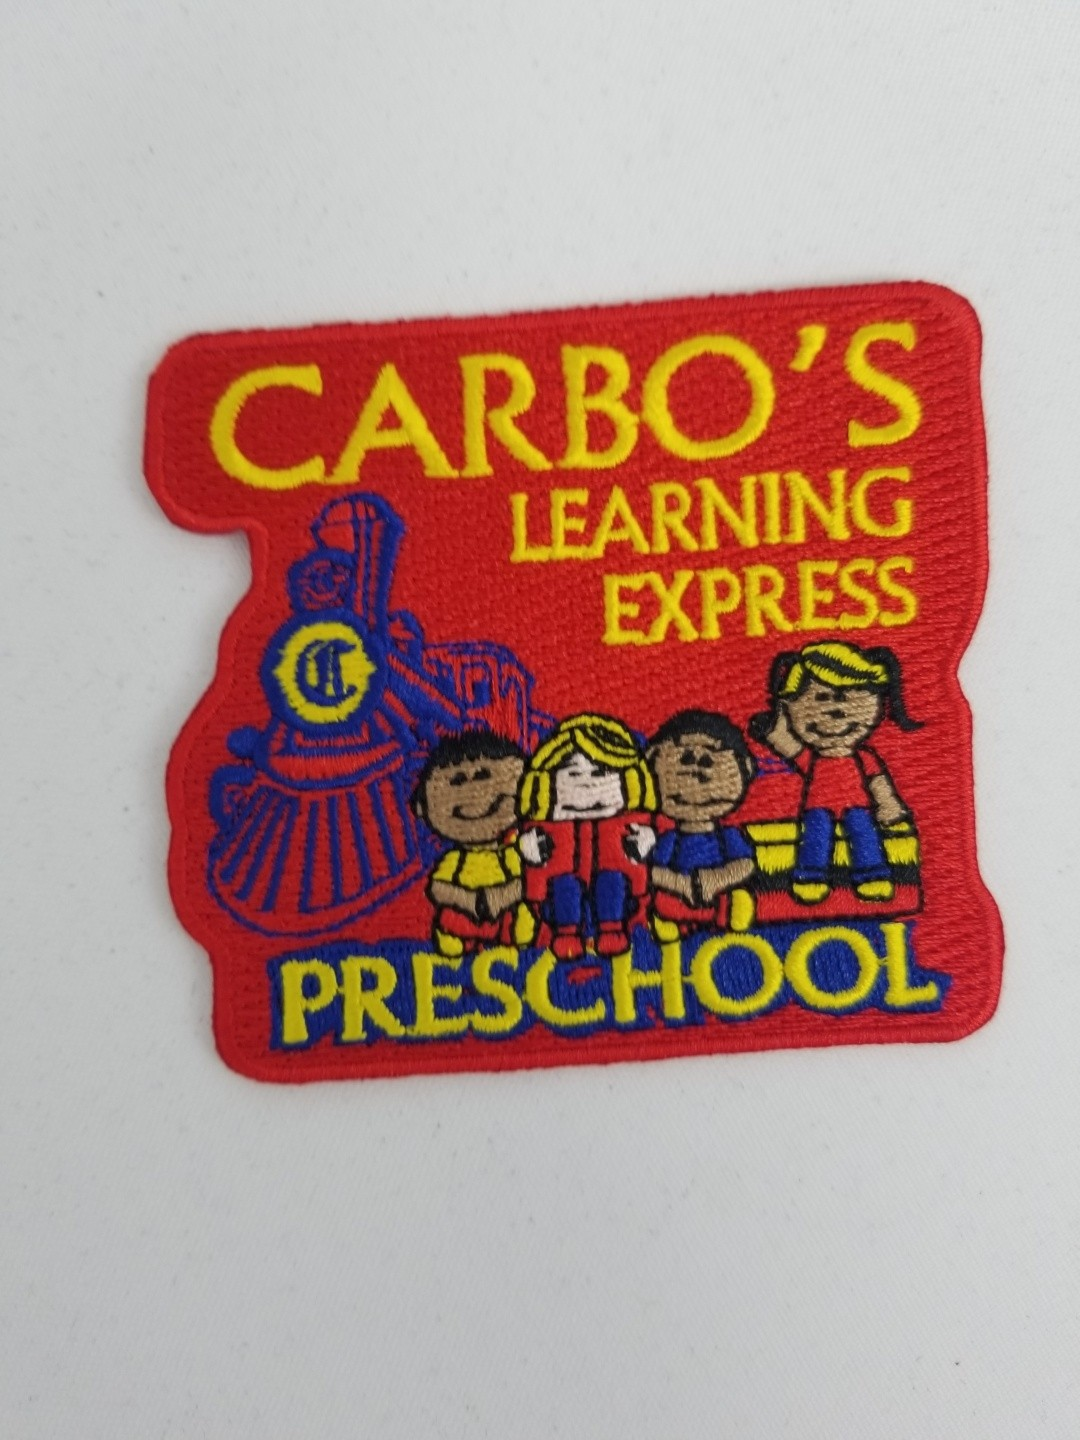 Carbo's Learning Express- New Orleans, LA